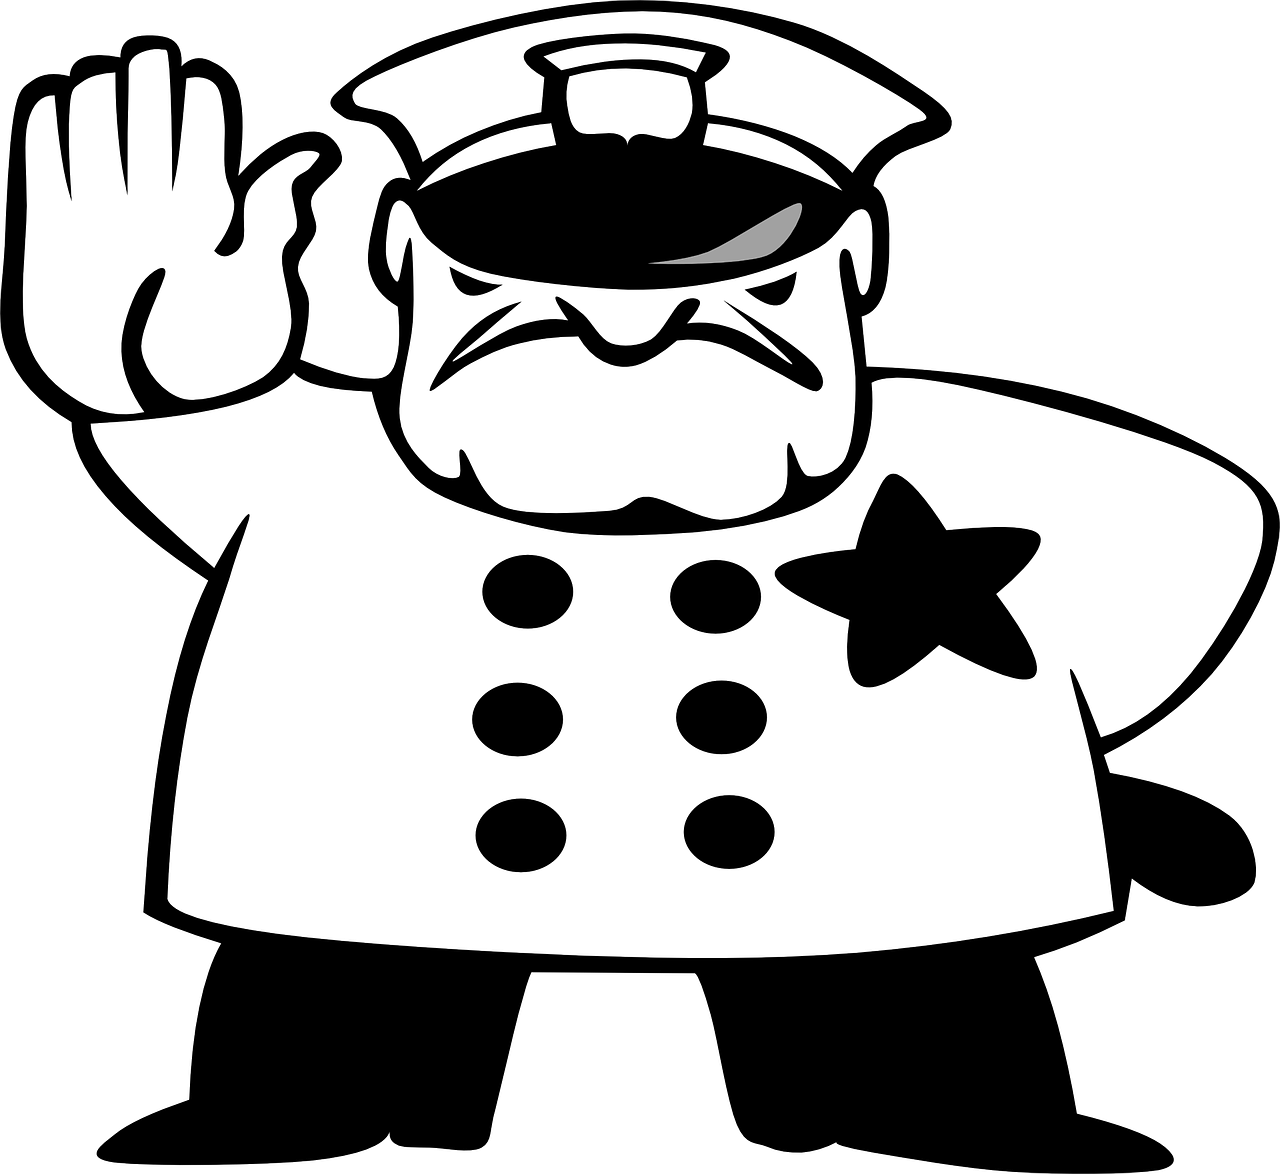 Black and white cartoon baseball cap clipart vector freeuse download Police Hat Drawing at GetDrawings.com | Free for personal use Police ... vector freeuse download